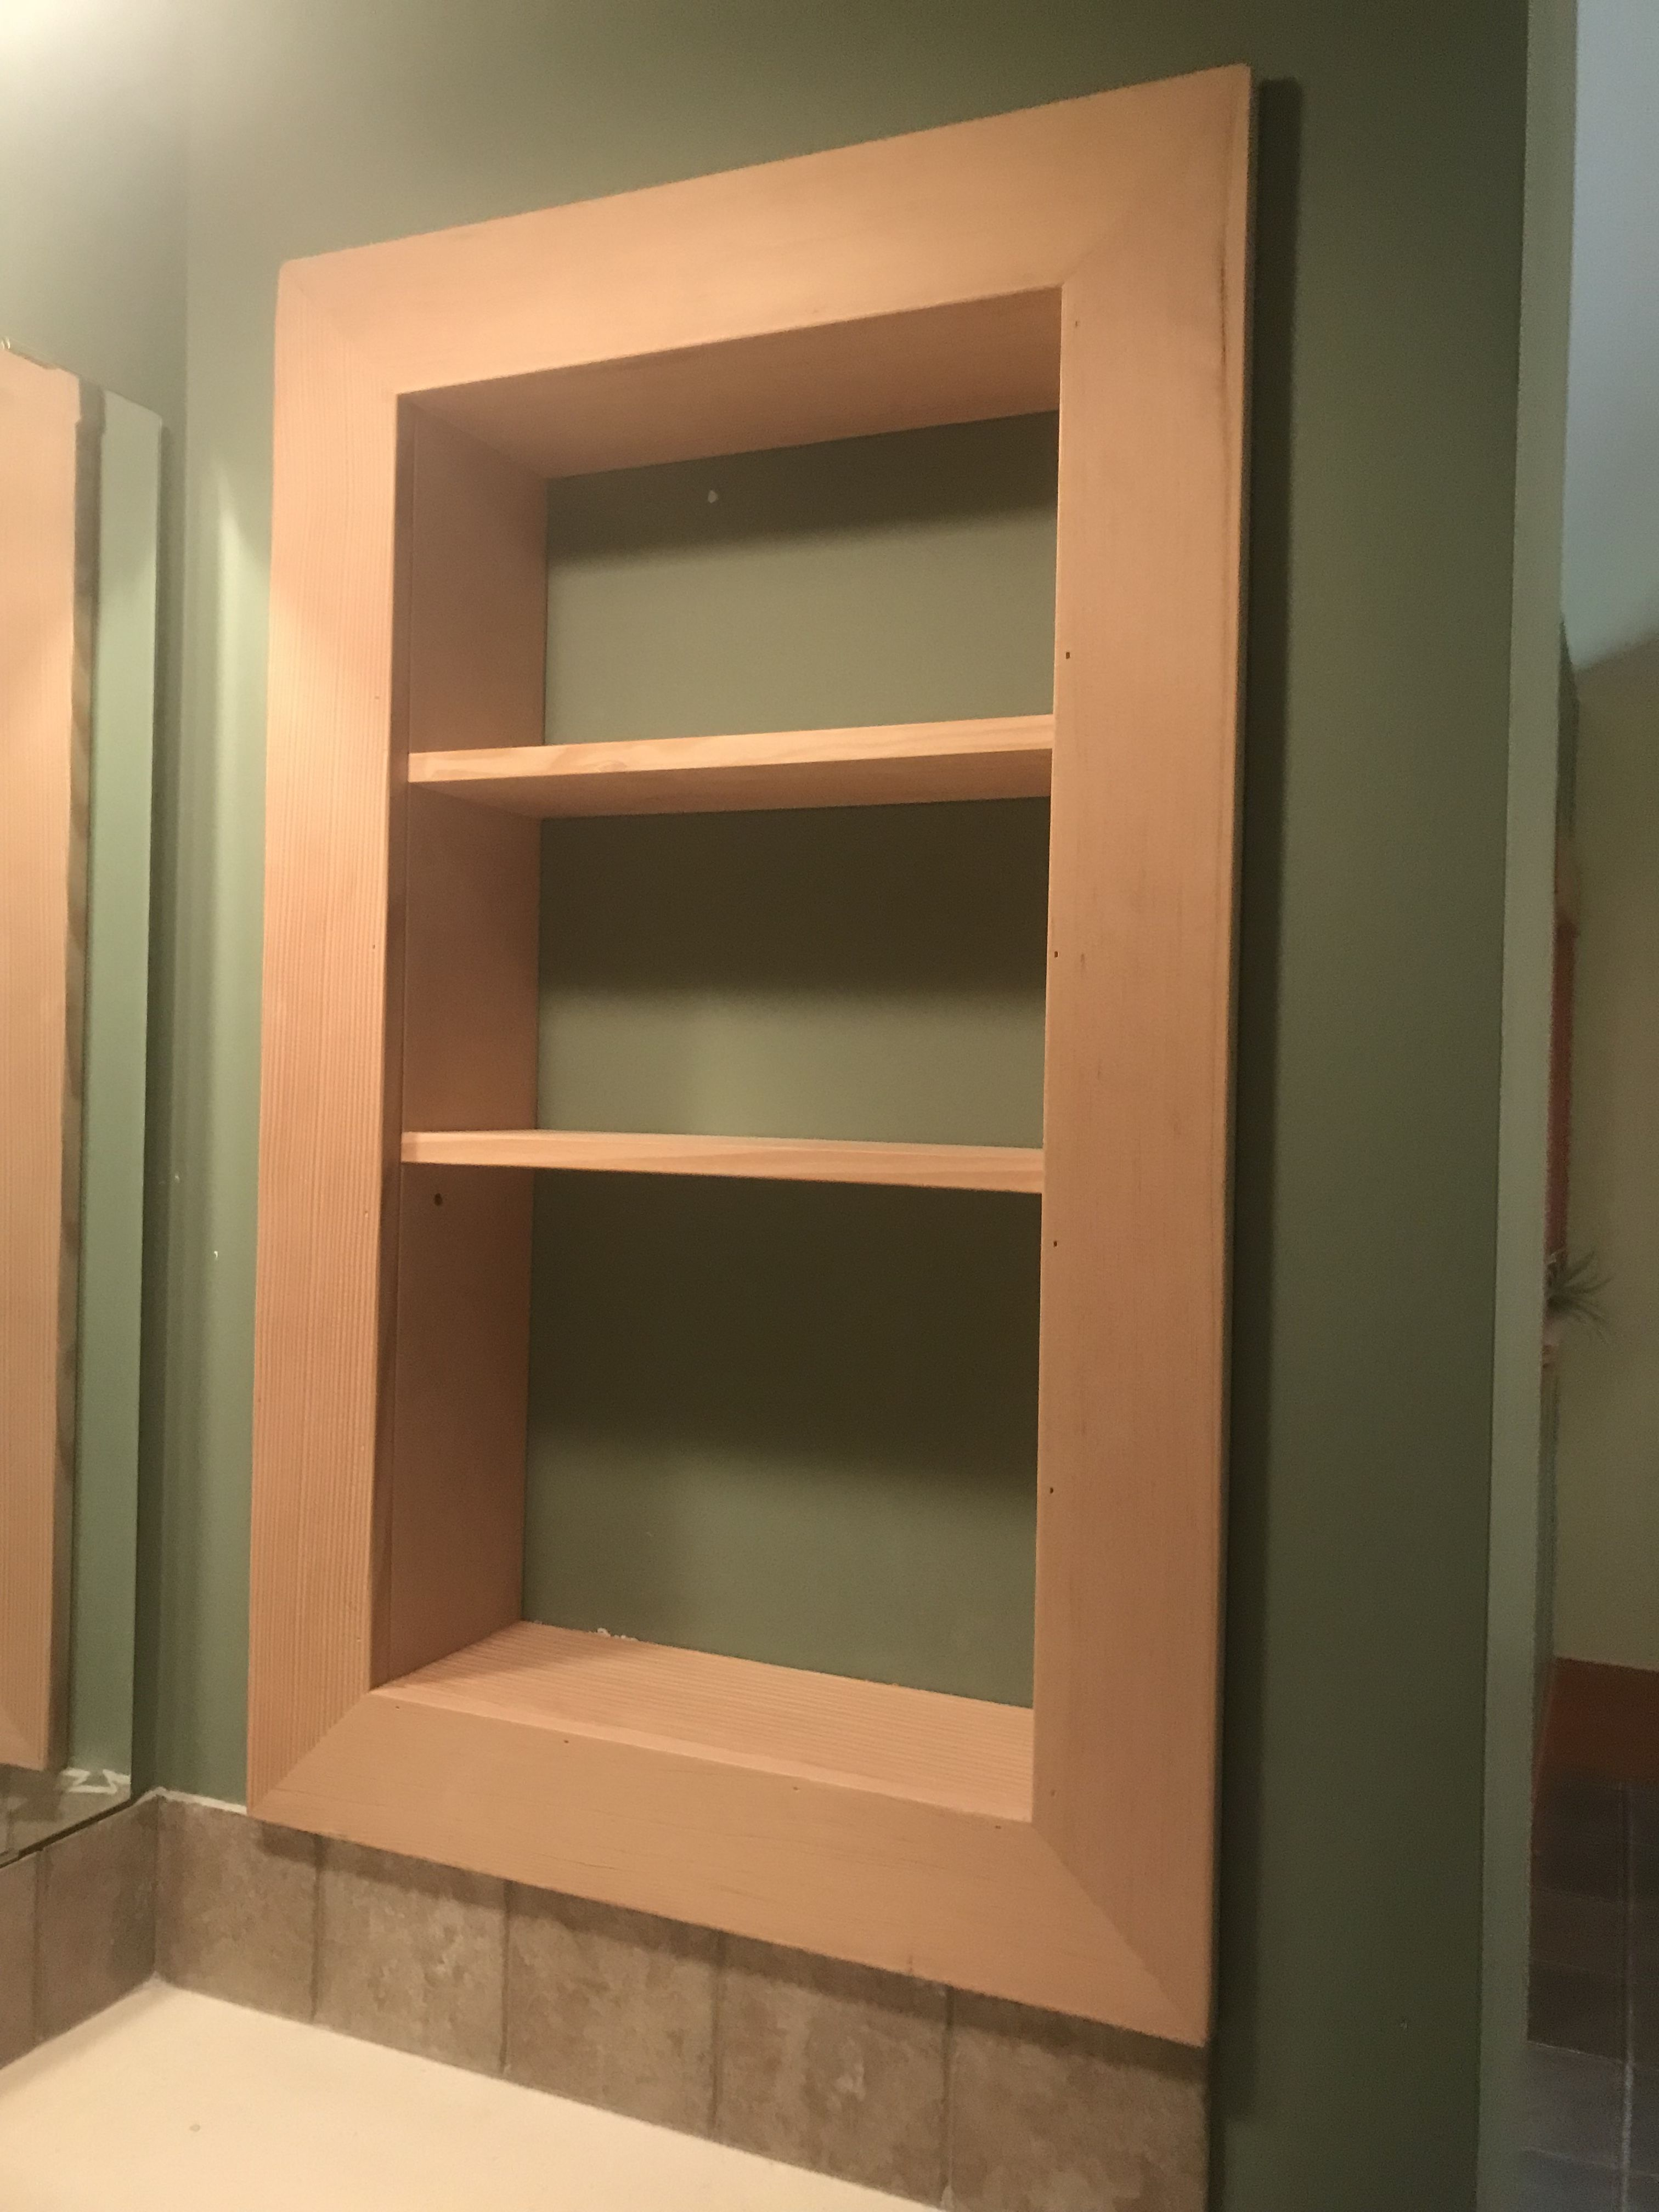 Pin By Mary Foy On Shelving In 2019 | Home Decor, Carpentry, Shelves